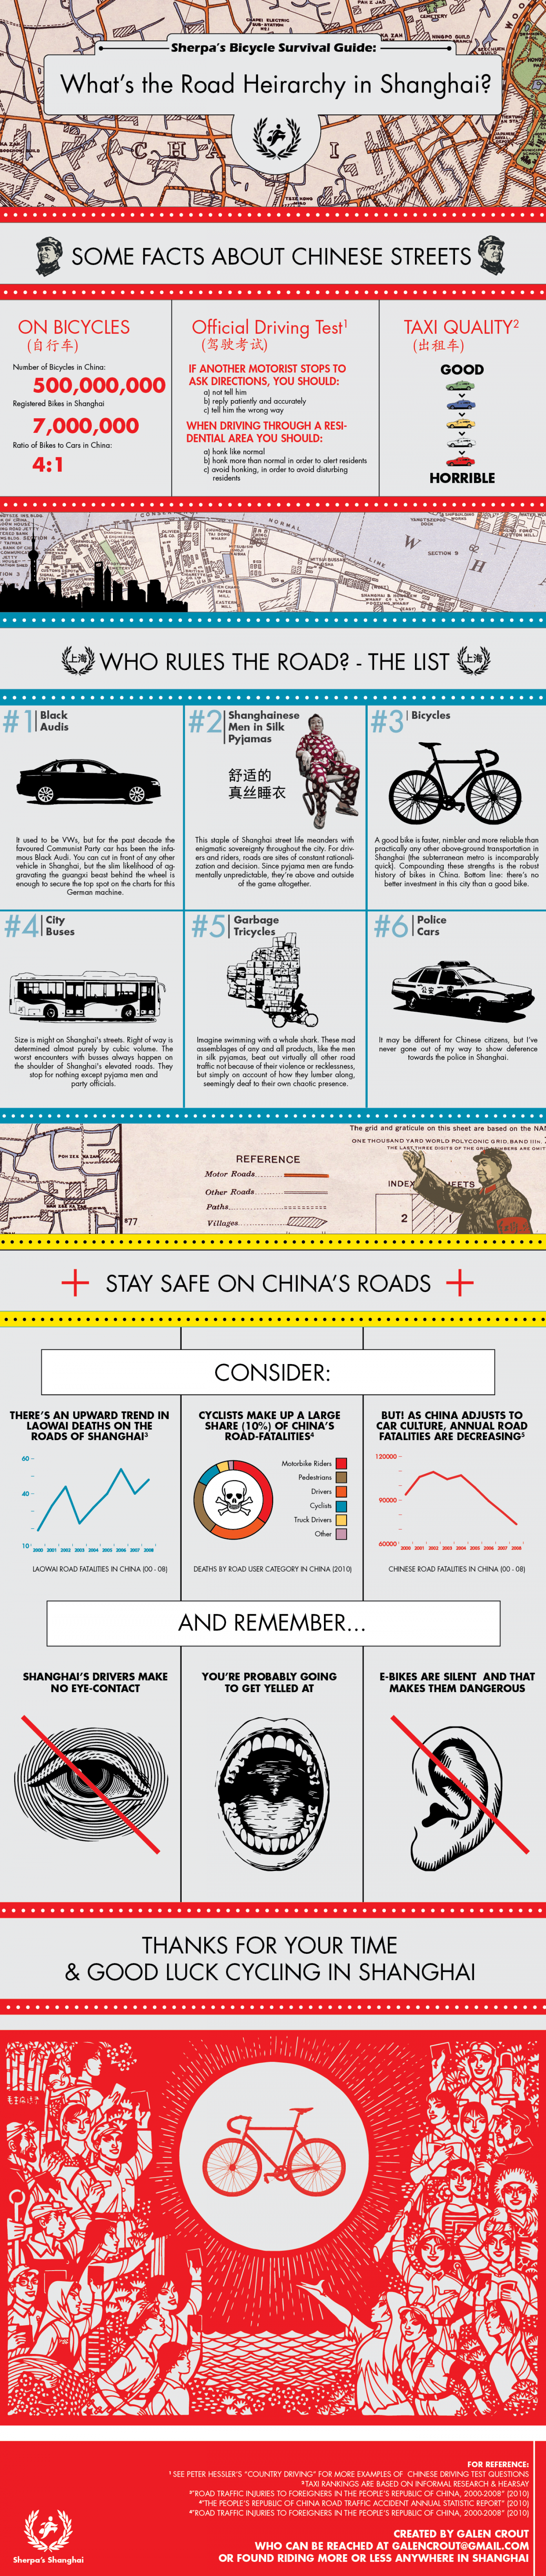 The Cyclist's Survival Guide in Shanghai Infographic